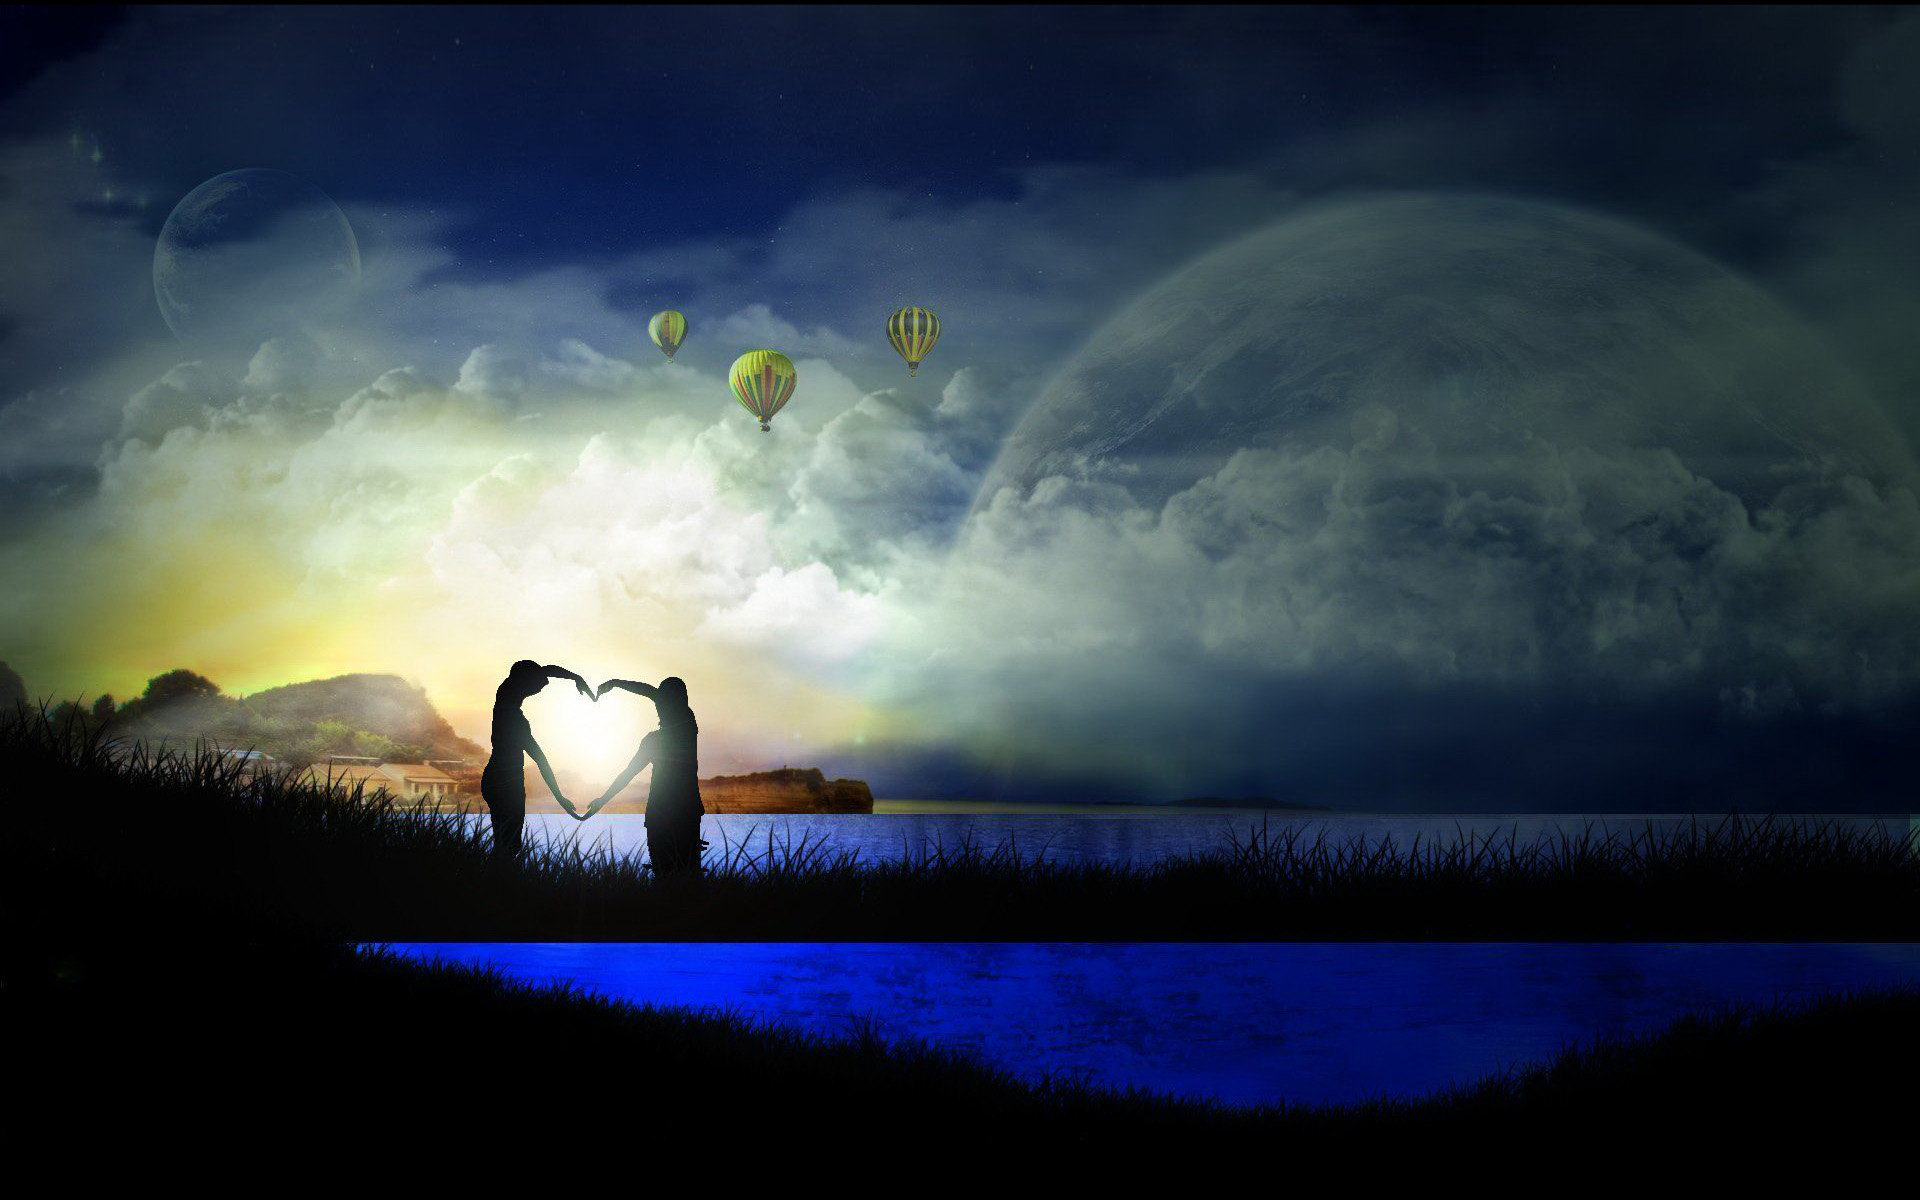 Romantic wallpapers best wallpapers for Immagini 1920x1080